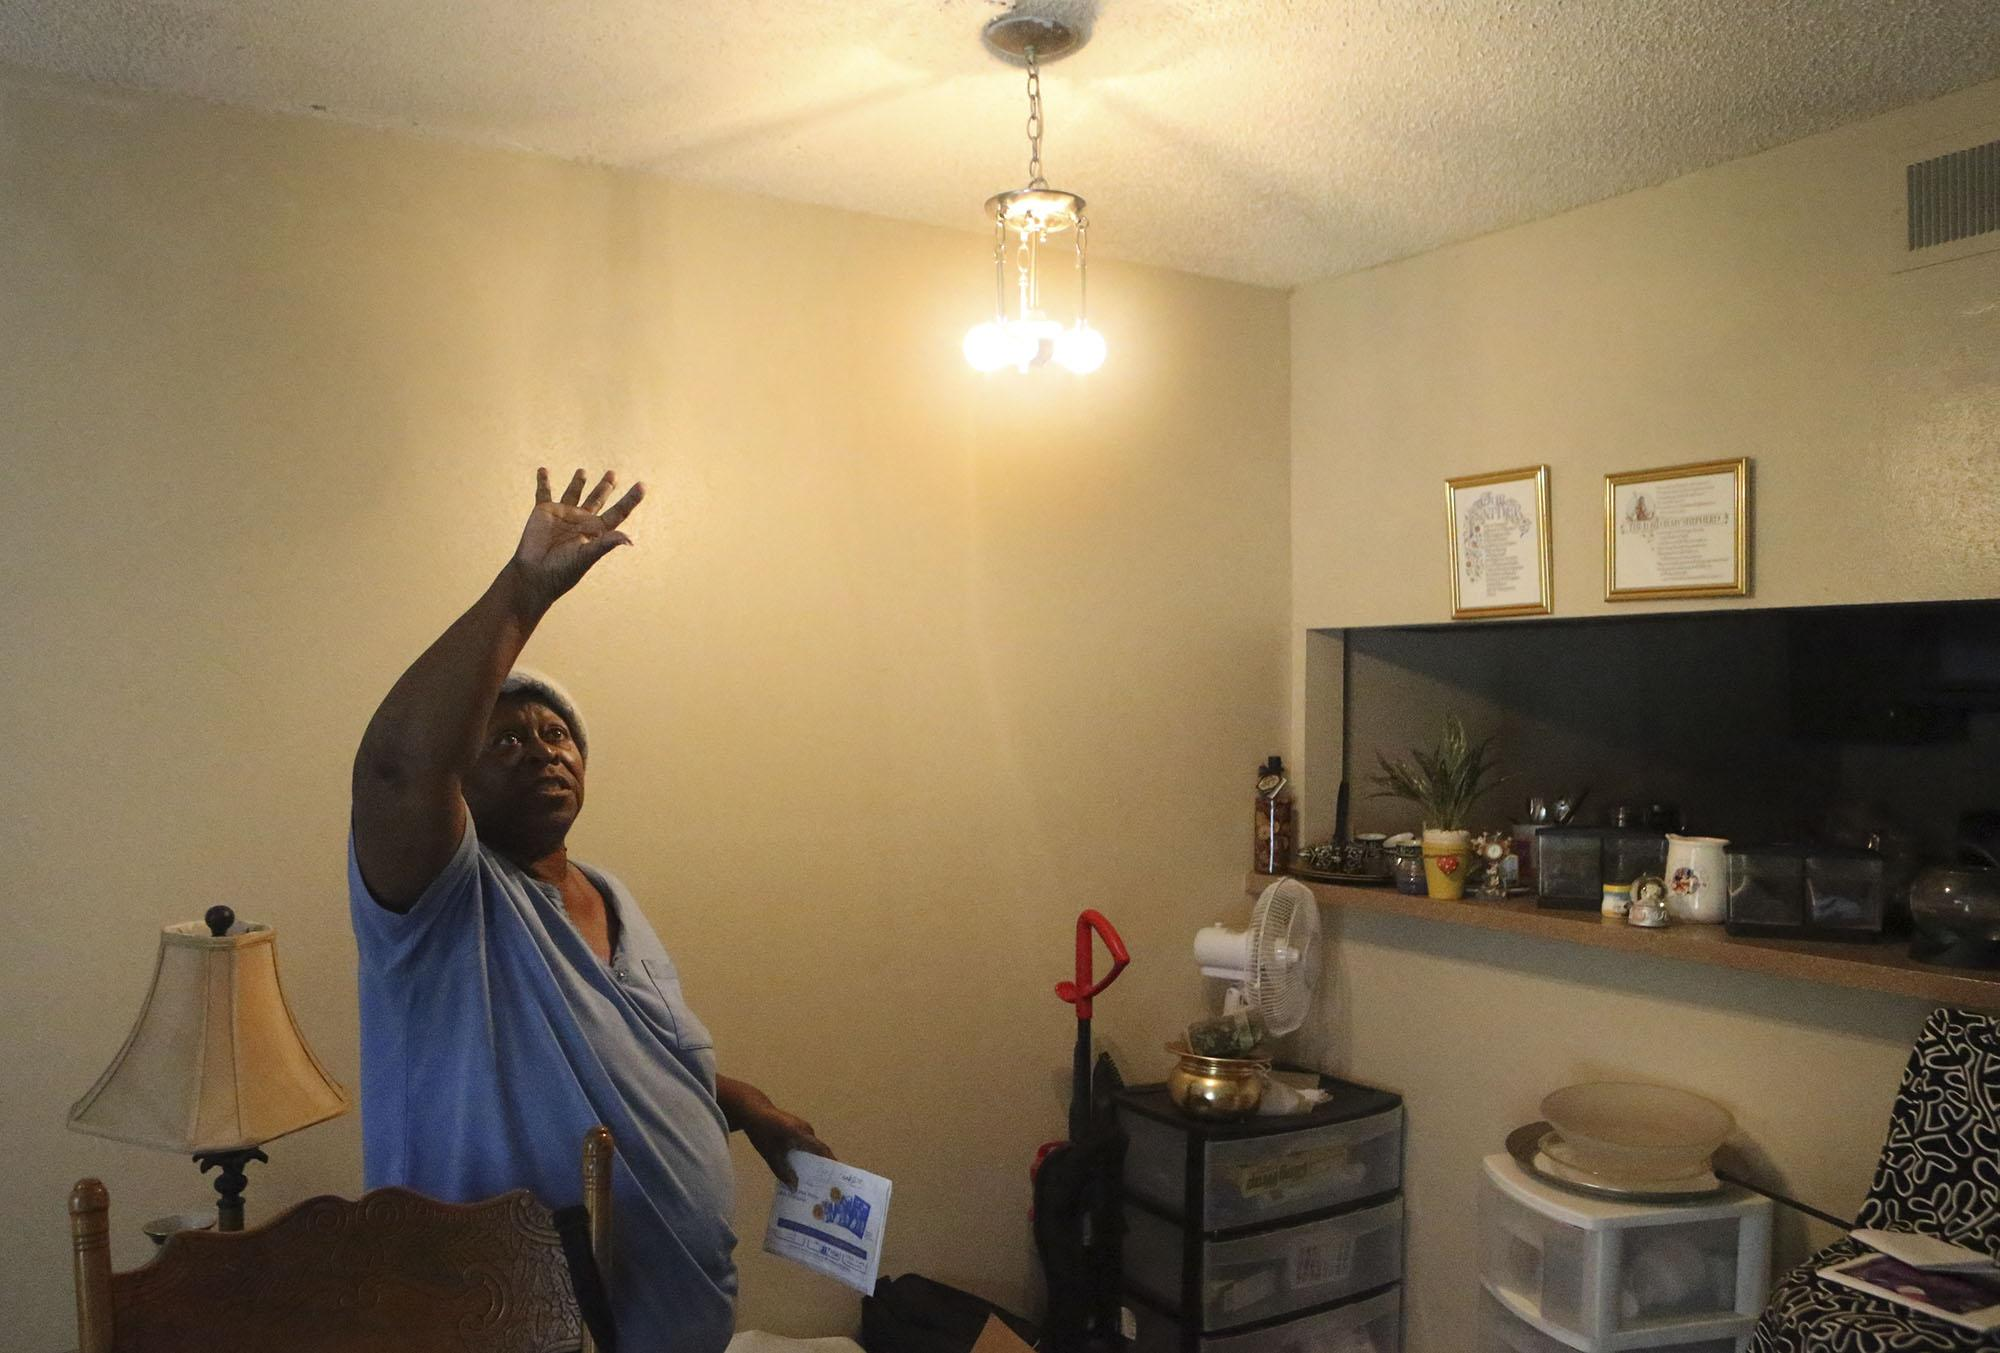 low-income landlord starr gets tax breaks despite allegations of